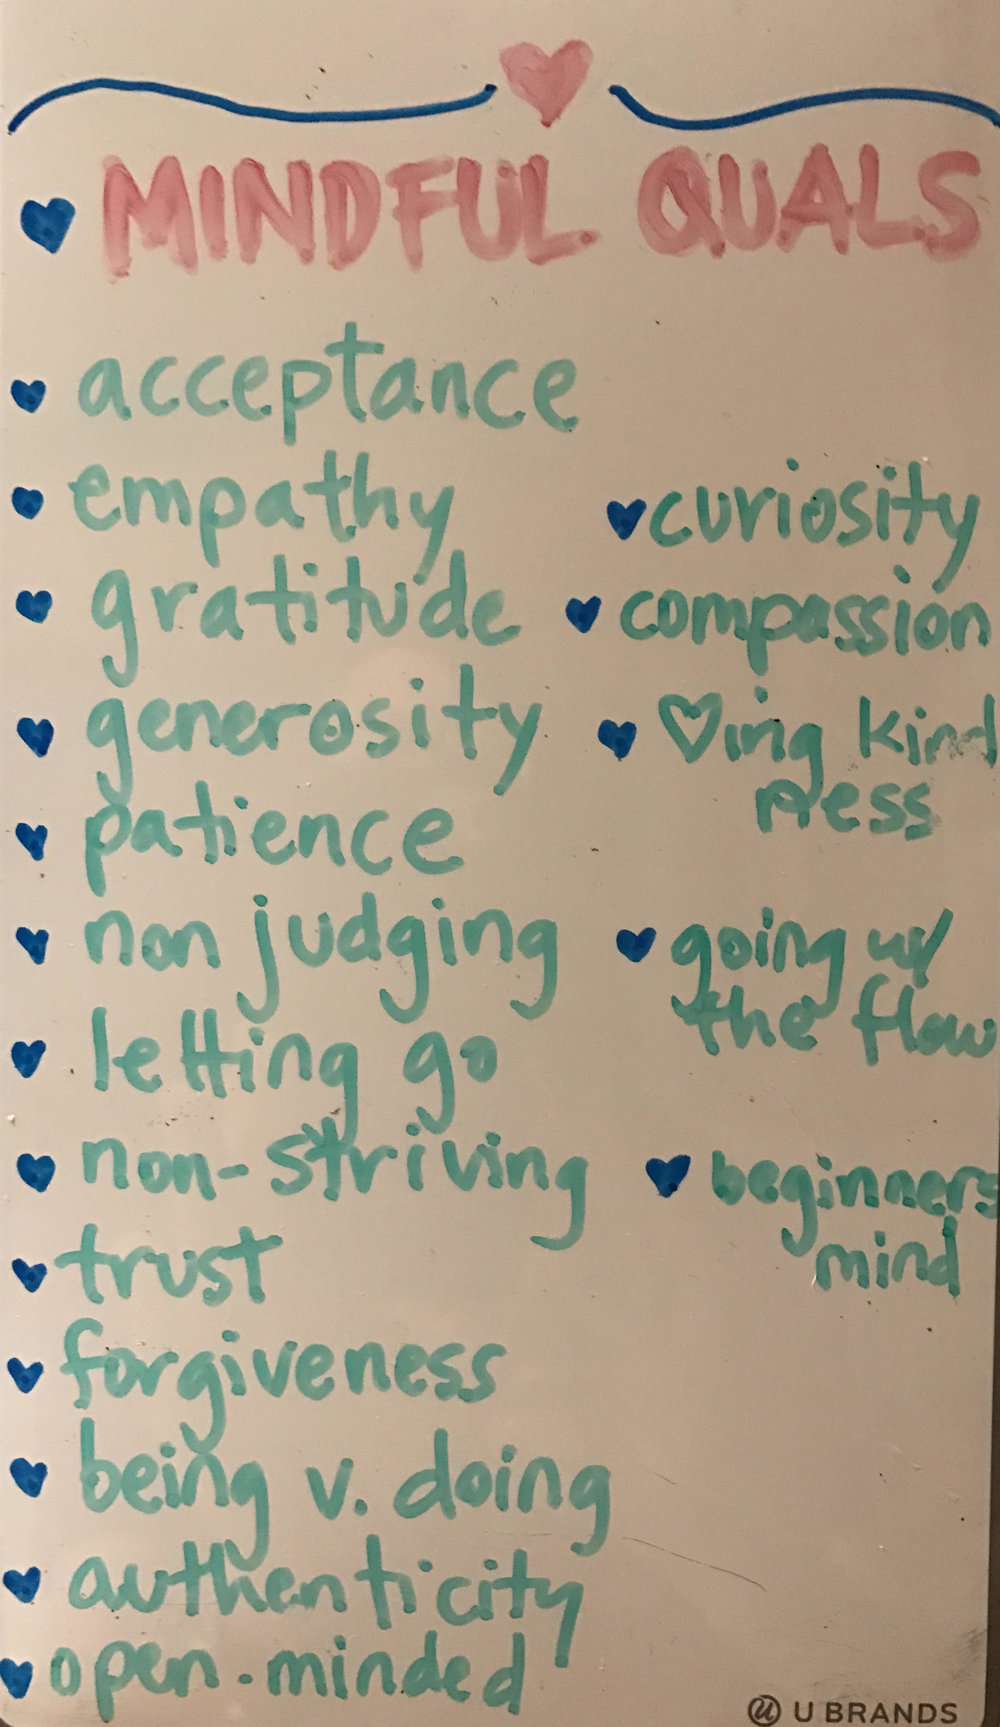 The Mindful Qualities